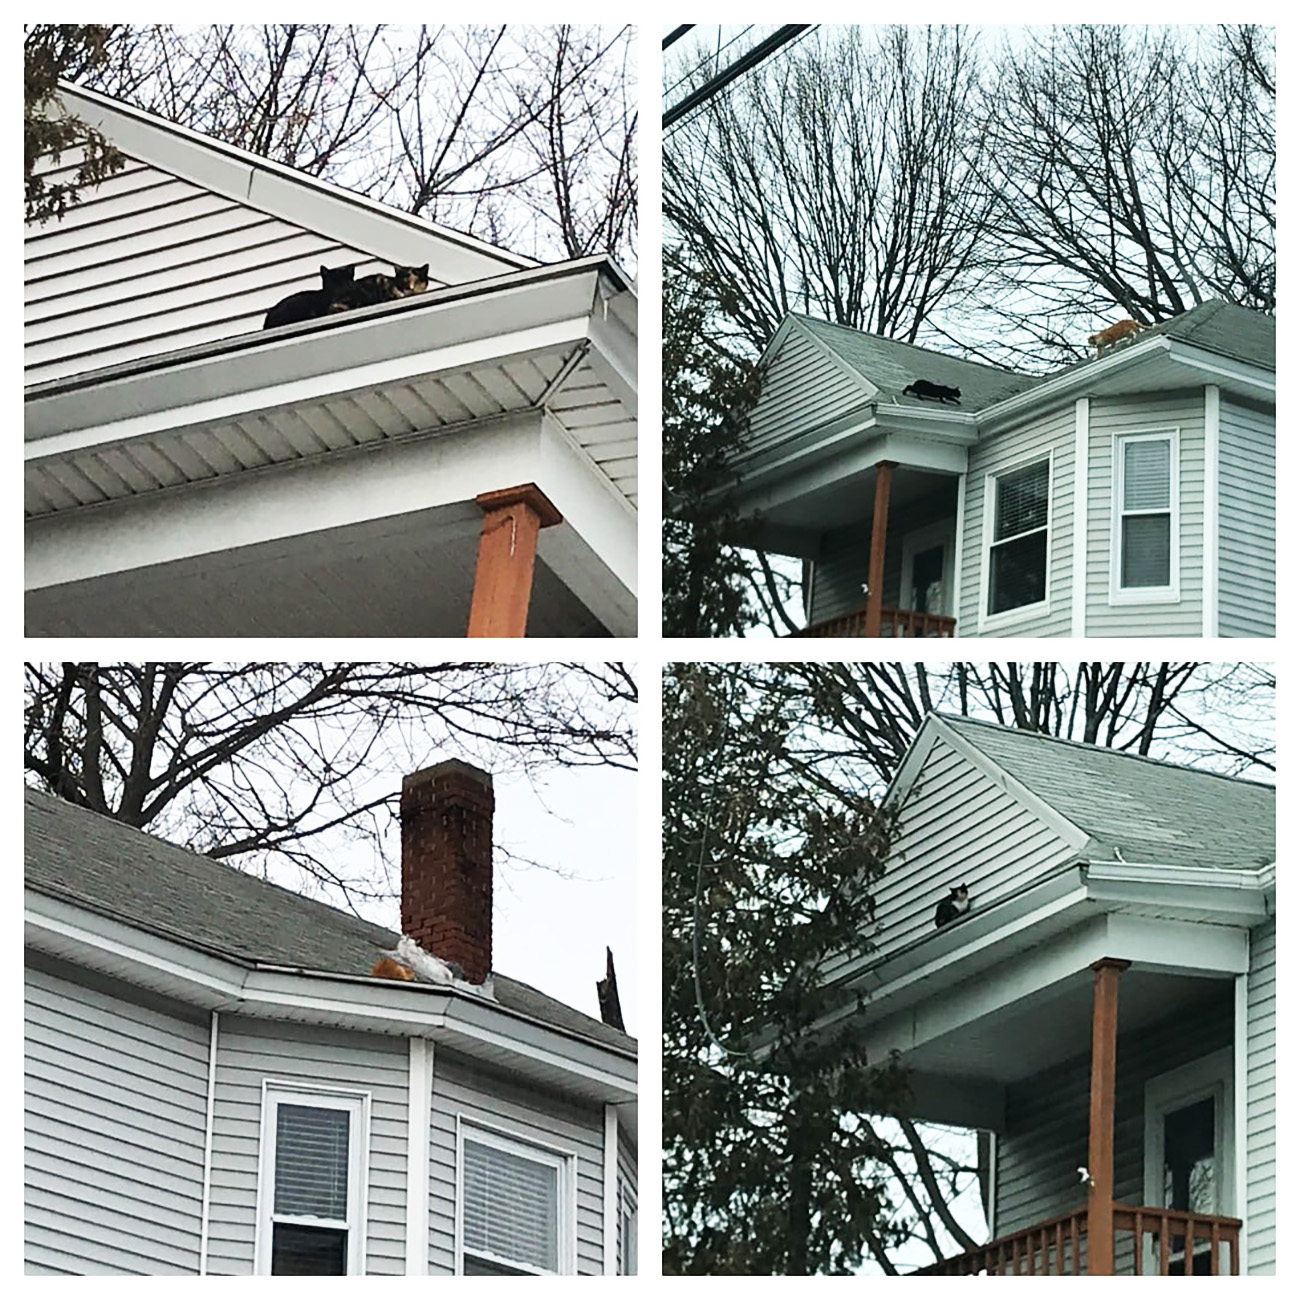 Cats on roof composite